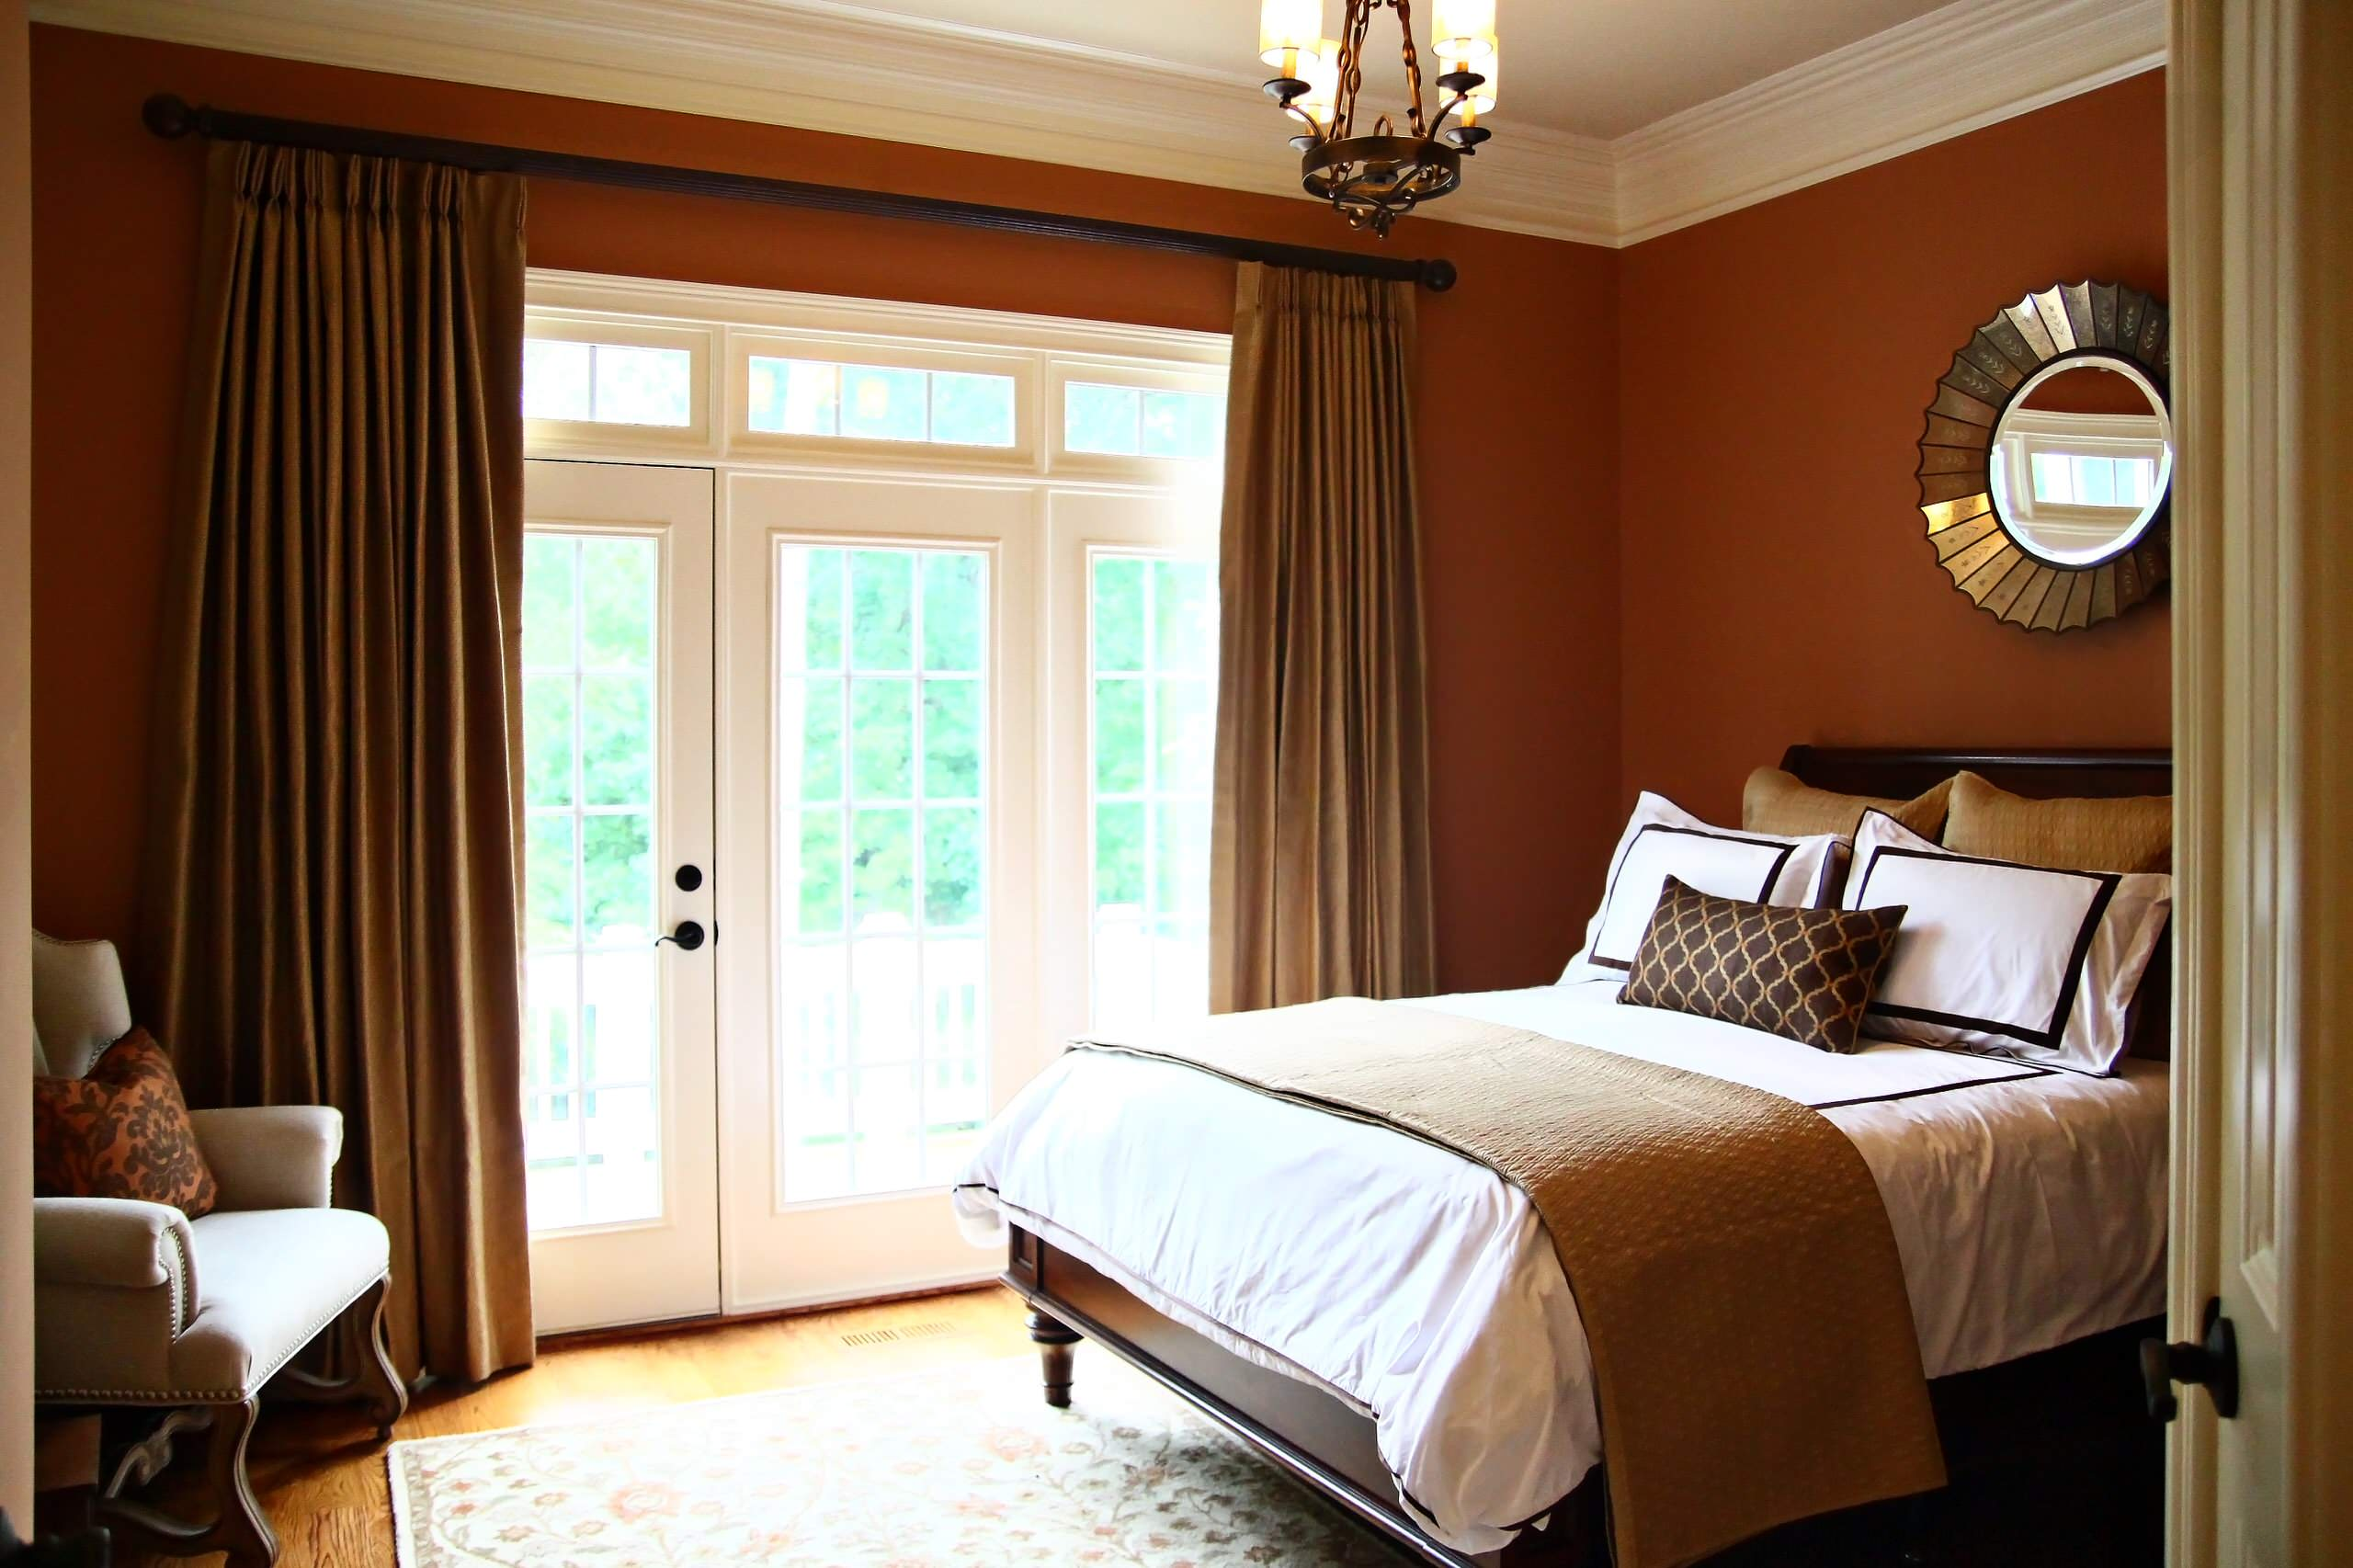 75 Beautiful Traditional Bedroom With Red Walls Pictures Ideas February 2021 Houzz